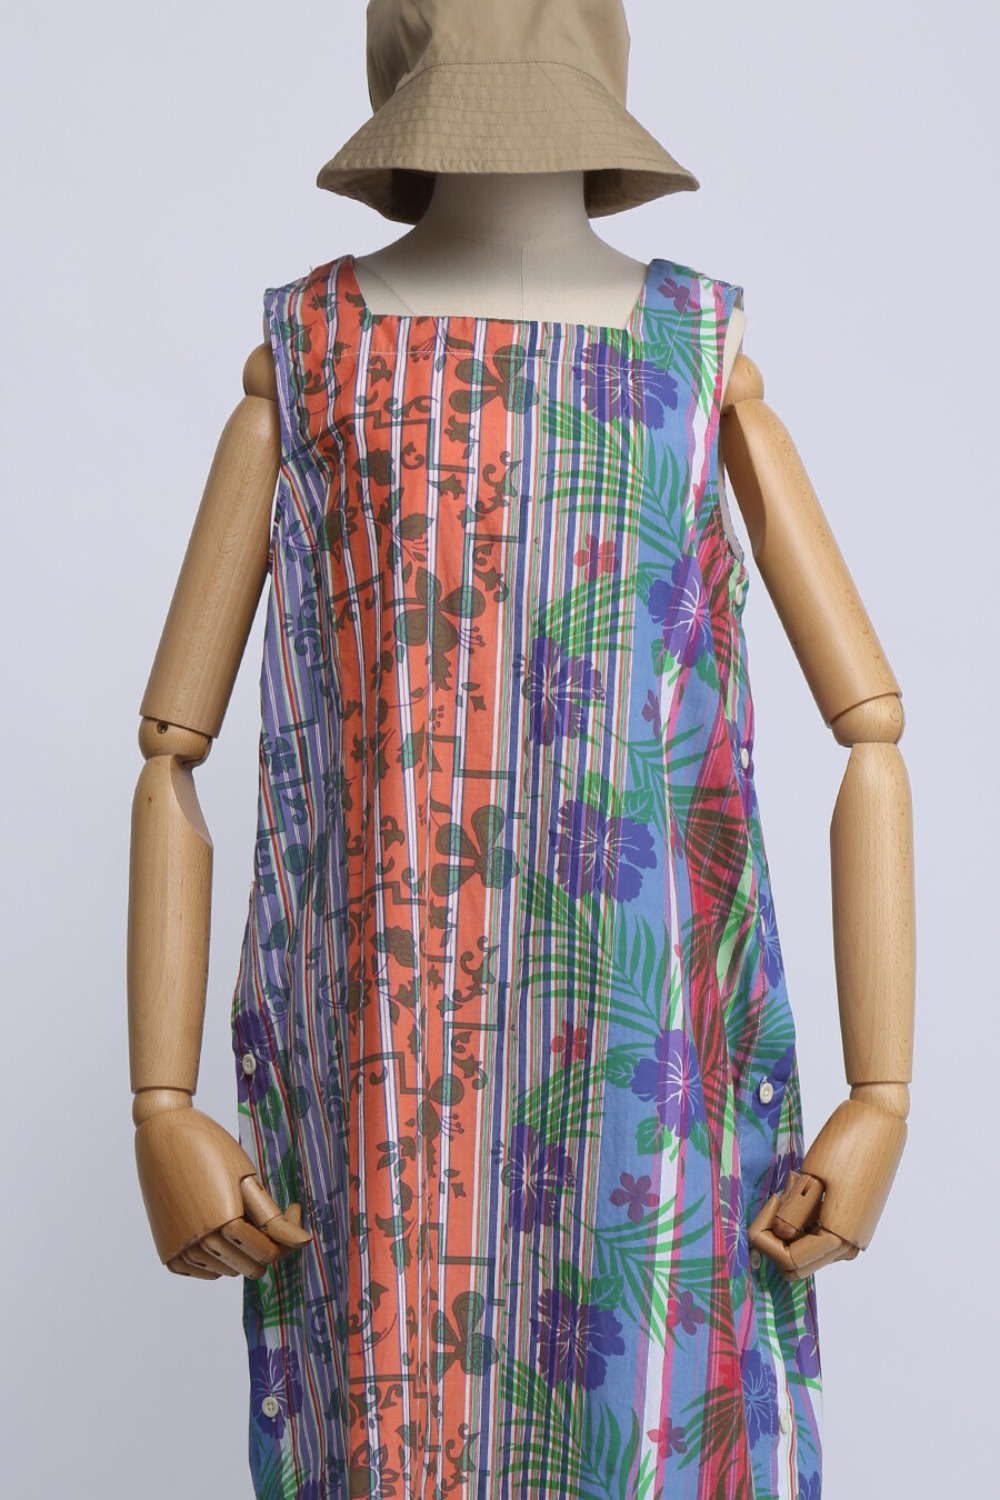 FWK SQUARE NECK DRESS MULTI COLOR FLORAL PRINTED ON STRIPE